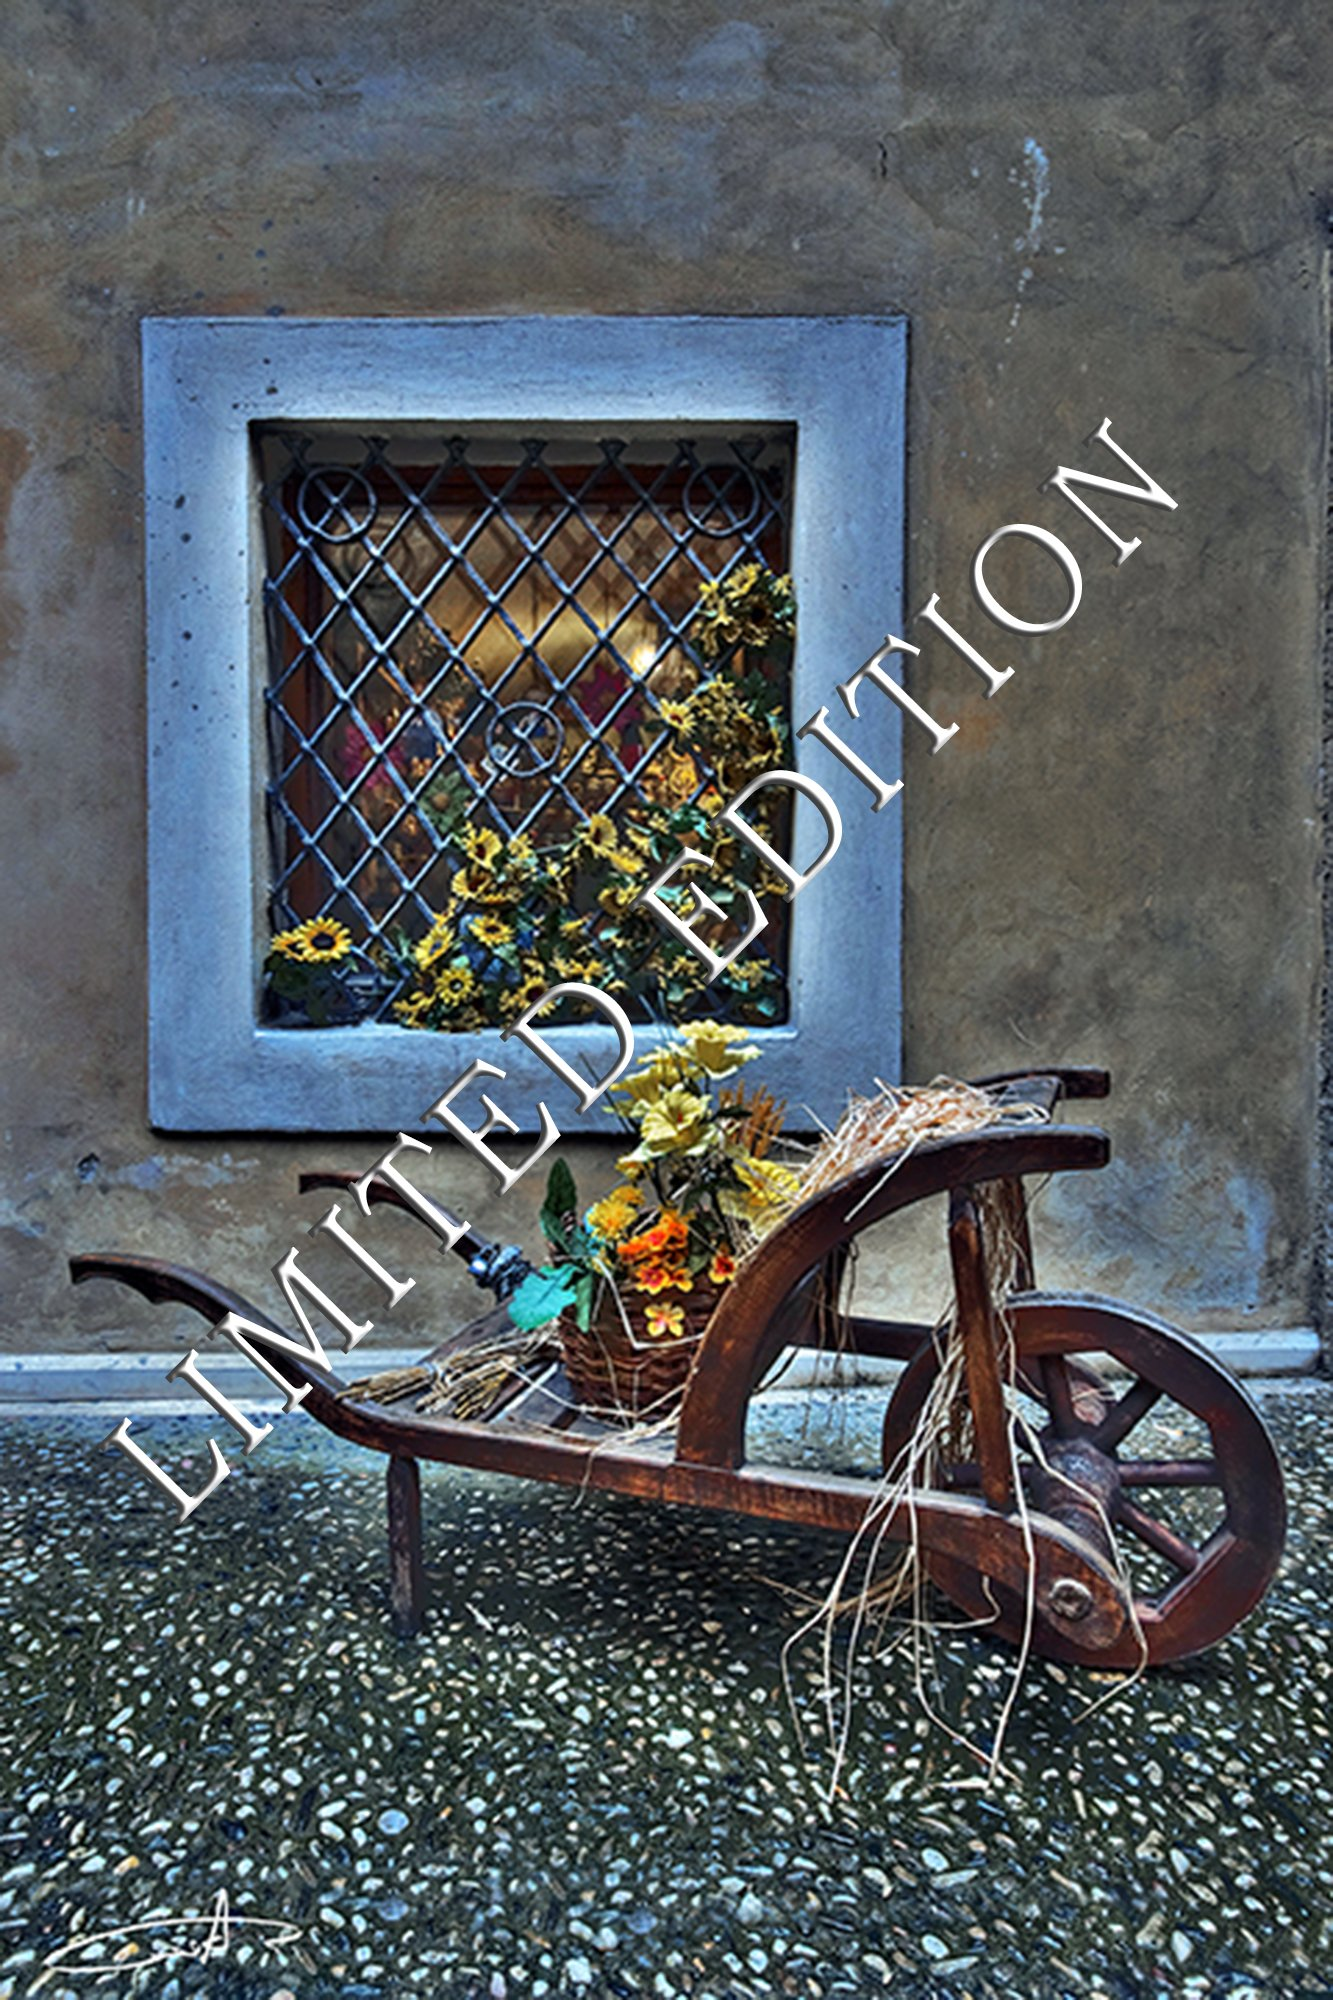 The Blue Window - Limited Edition (Only 20 copies world-wide) - 28''x43''(73x110cm) - By Aderet. Made in Germany